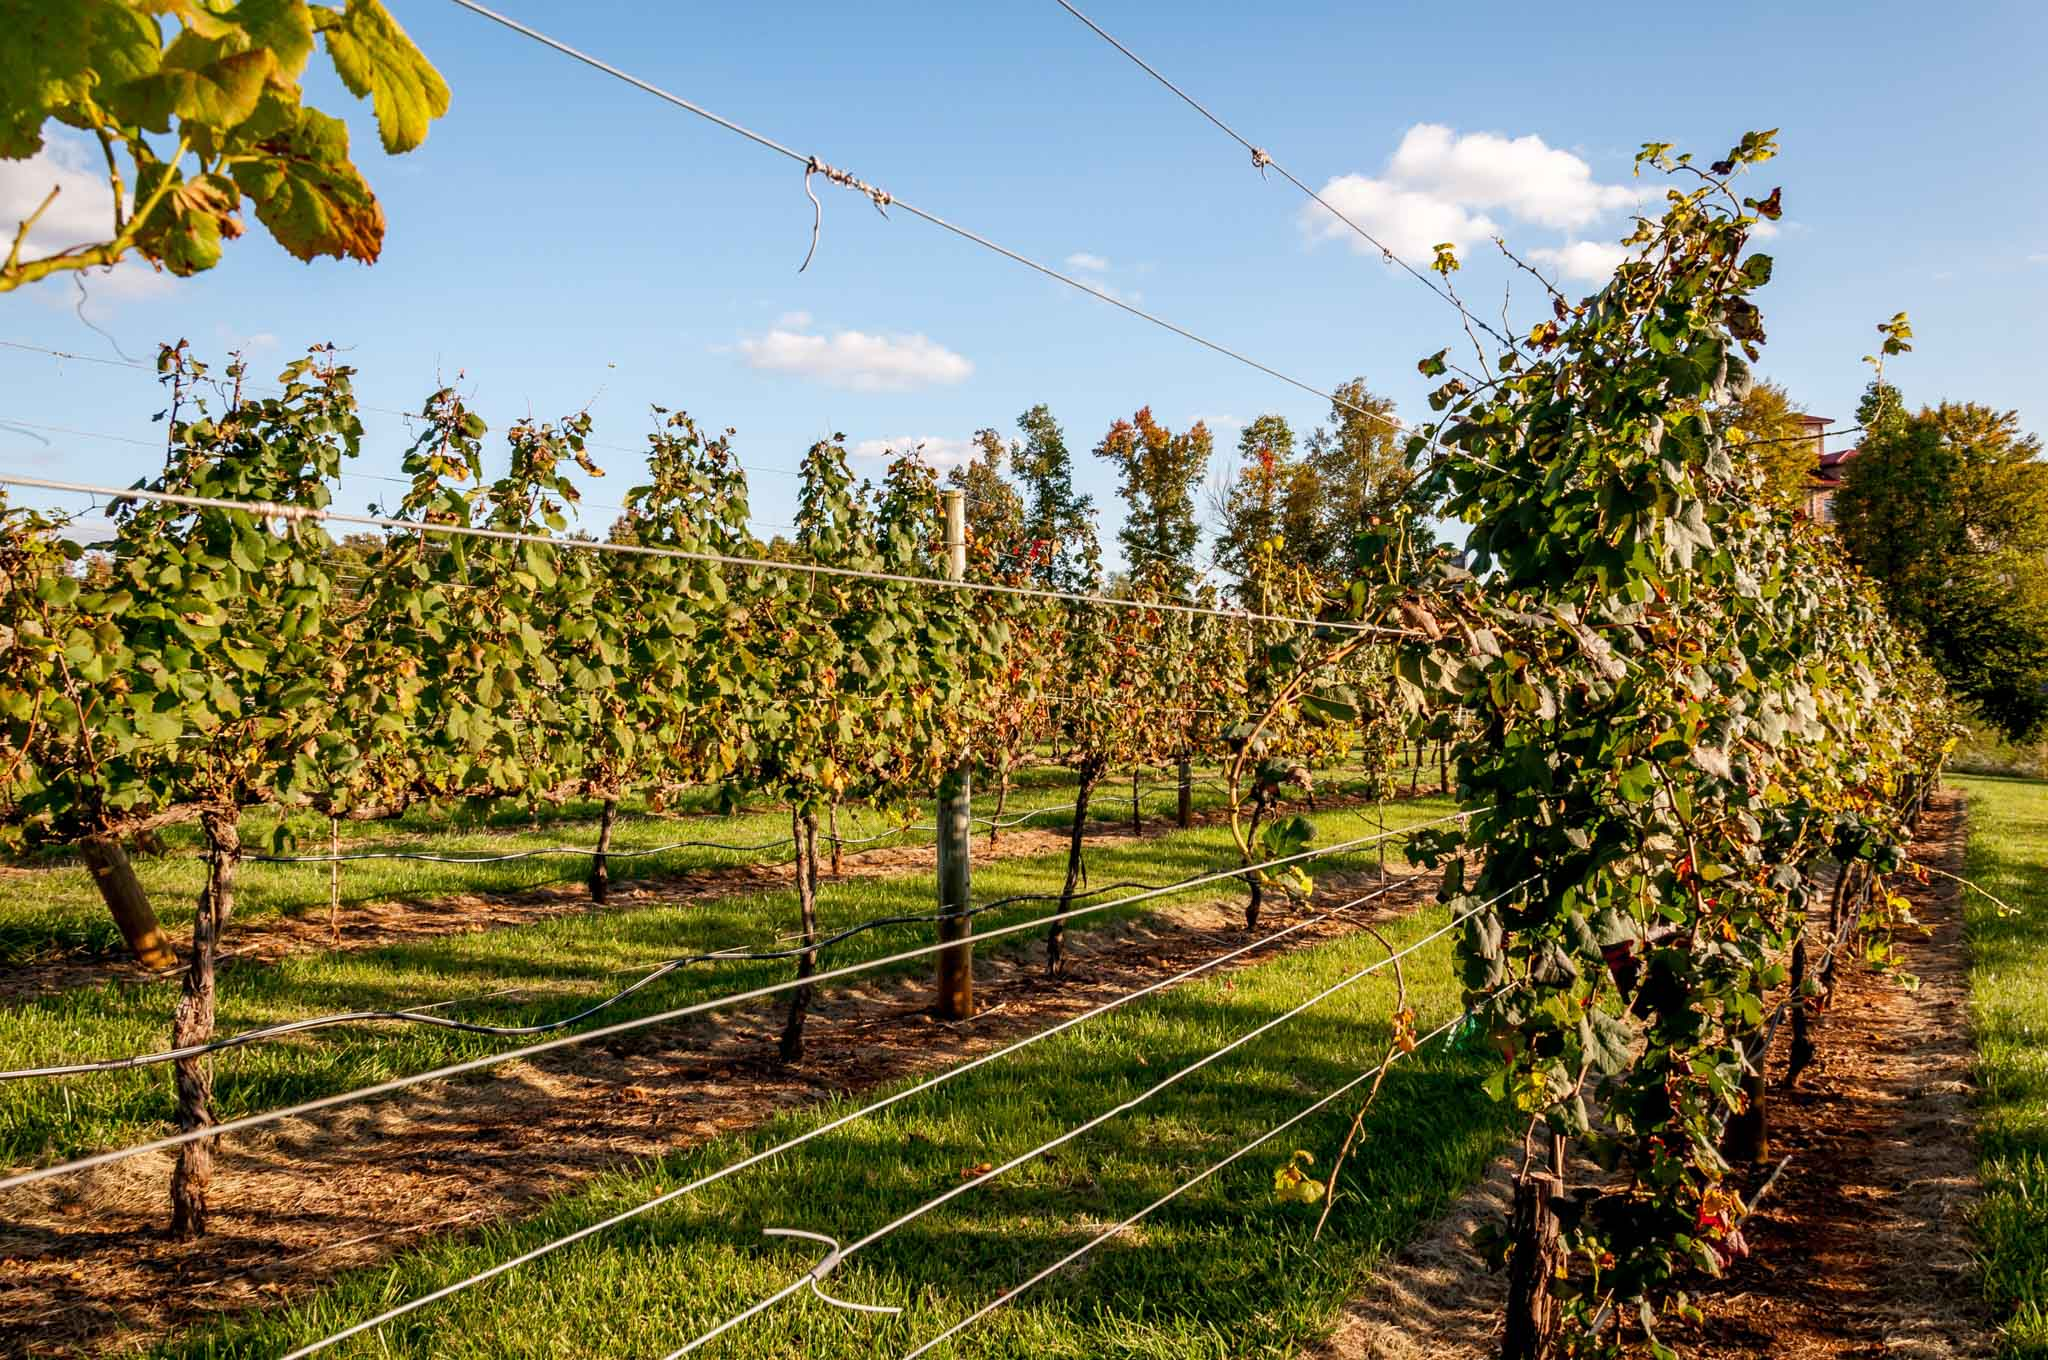 Vineyards leaves in fall colors at a Yadkin Valley winery in North Carolina